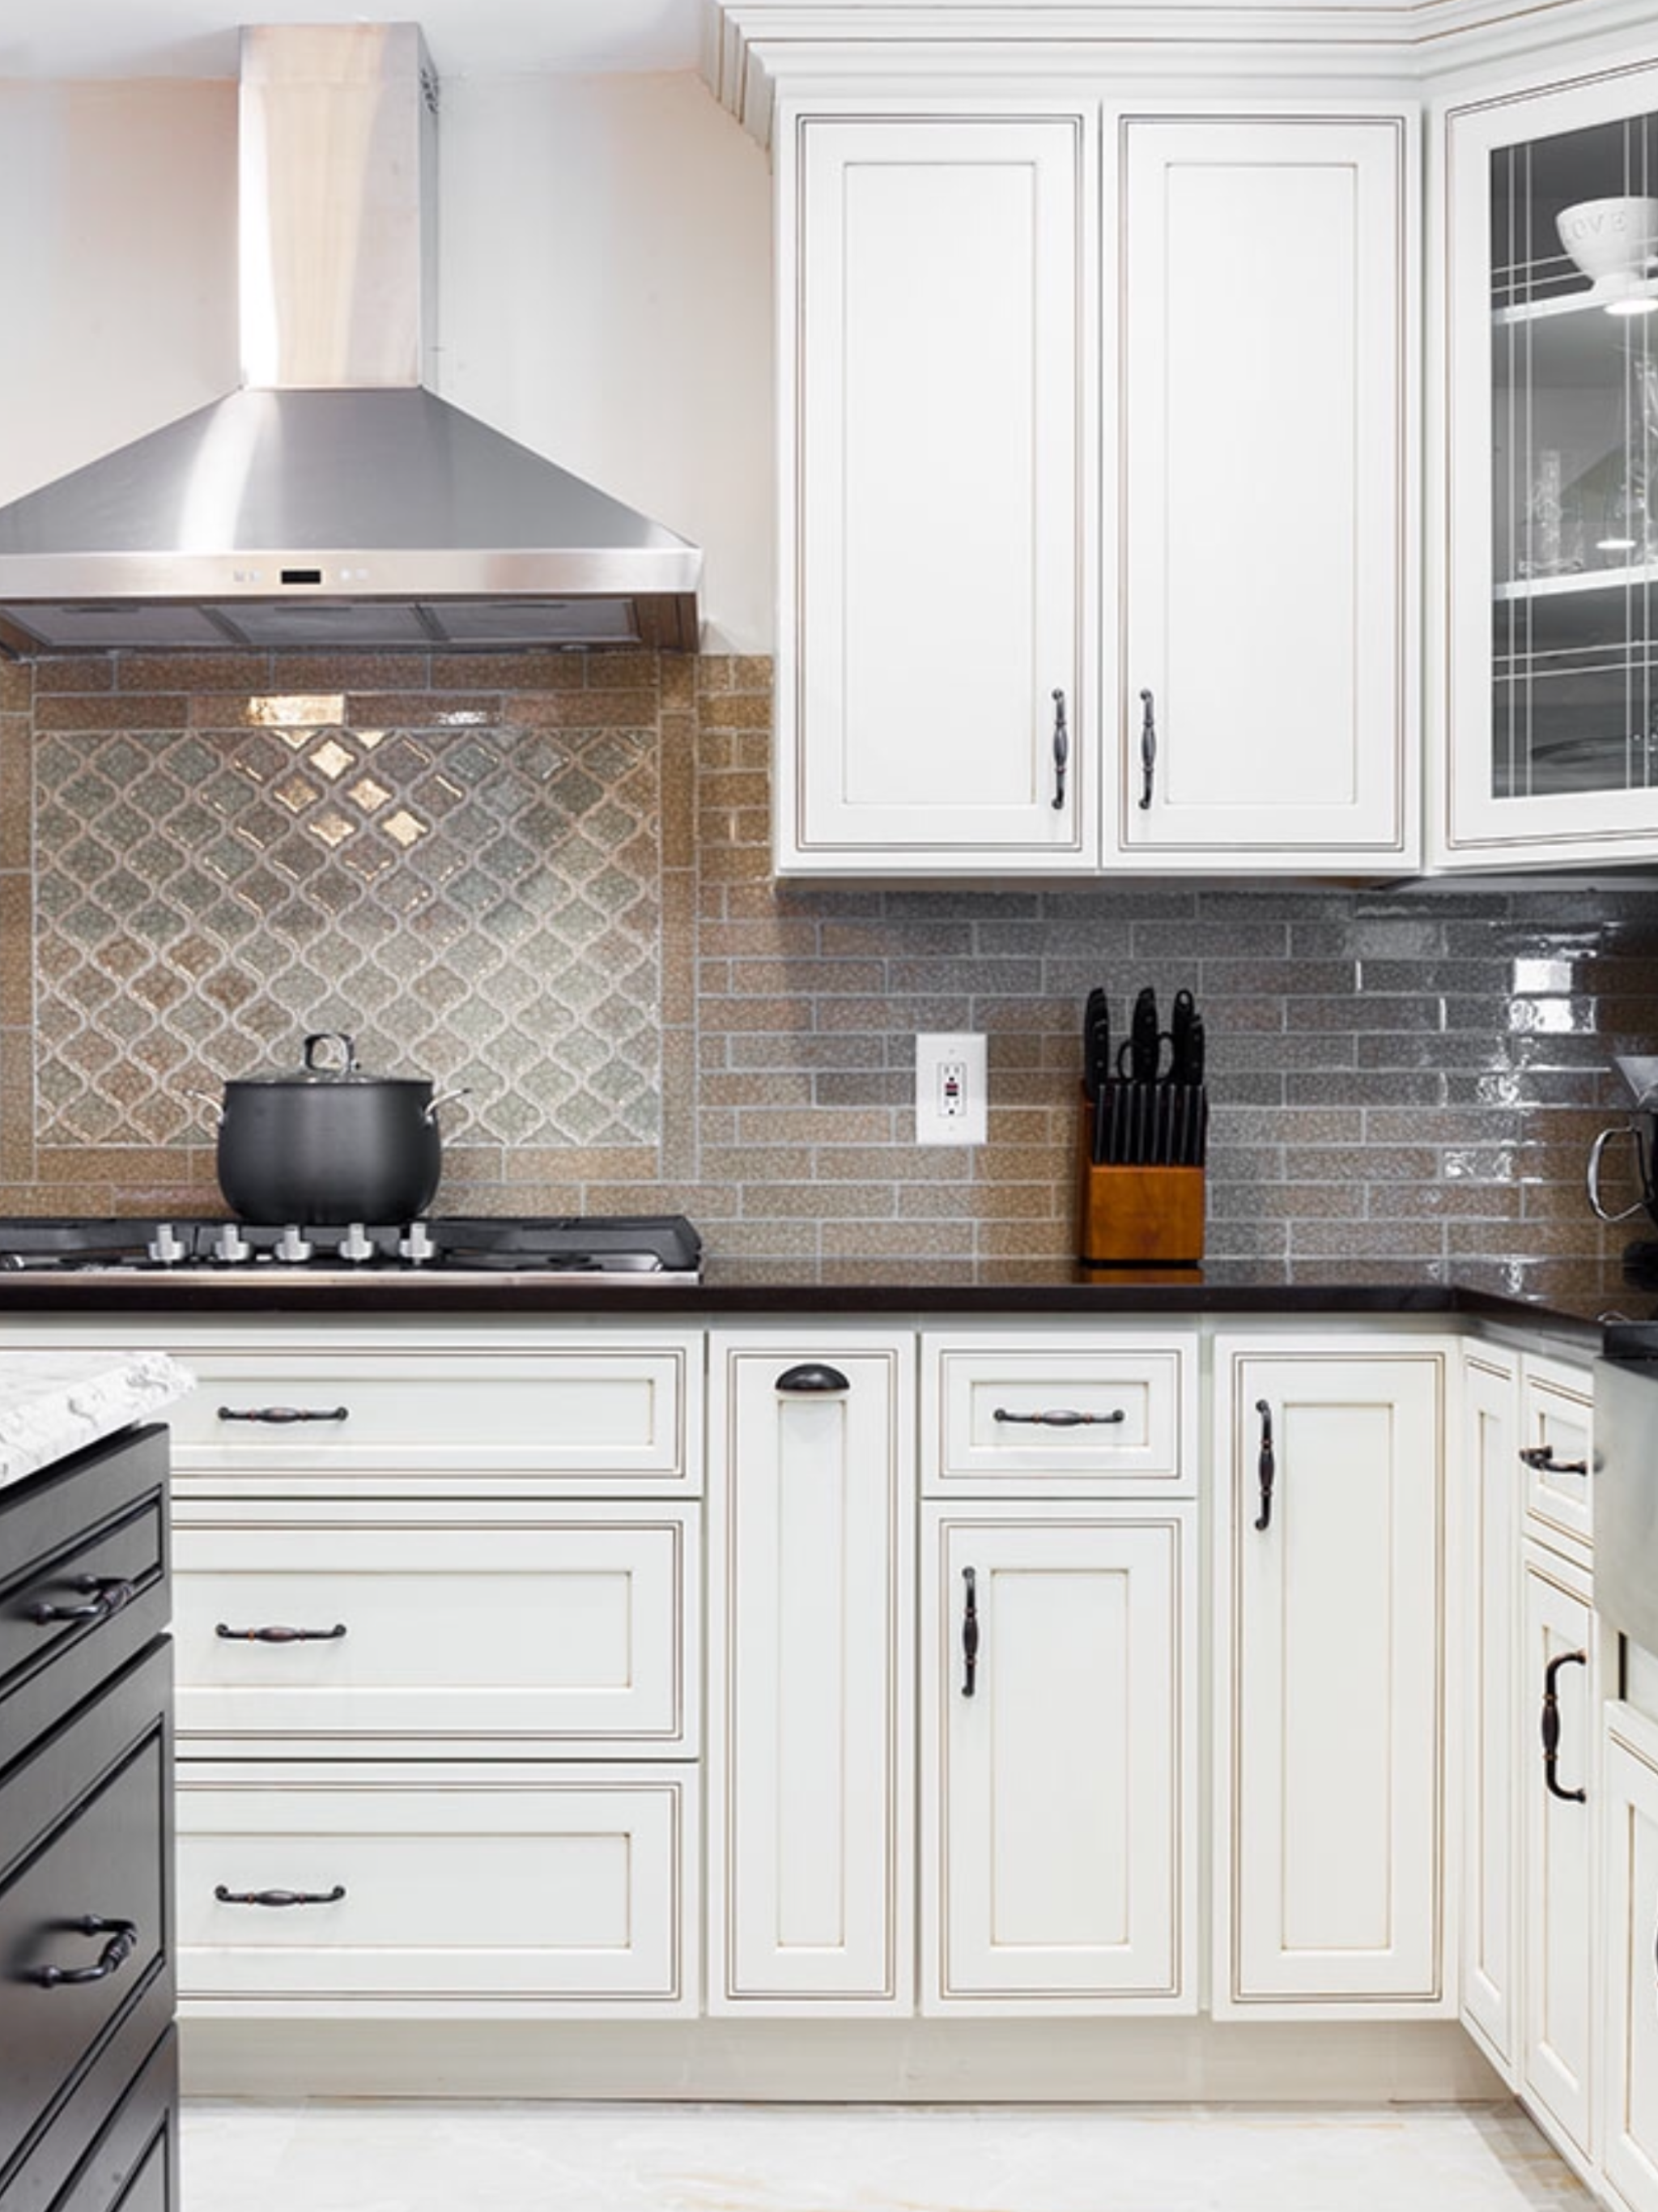 Pearl Maple Glazed Cabinets image by abc kitchens ...